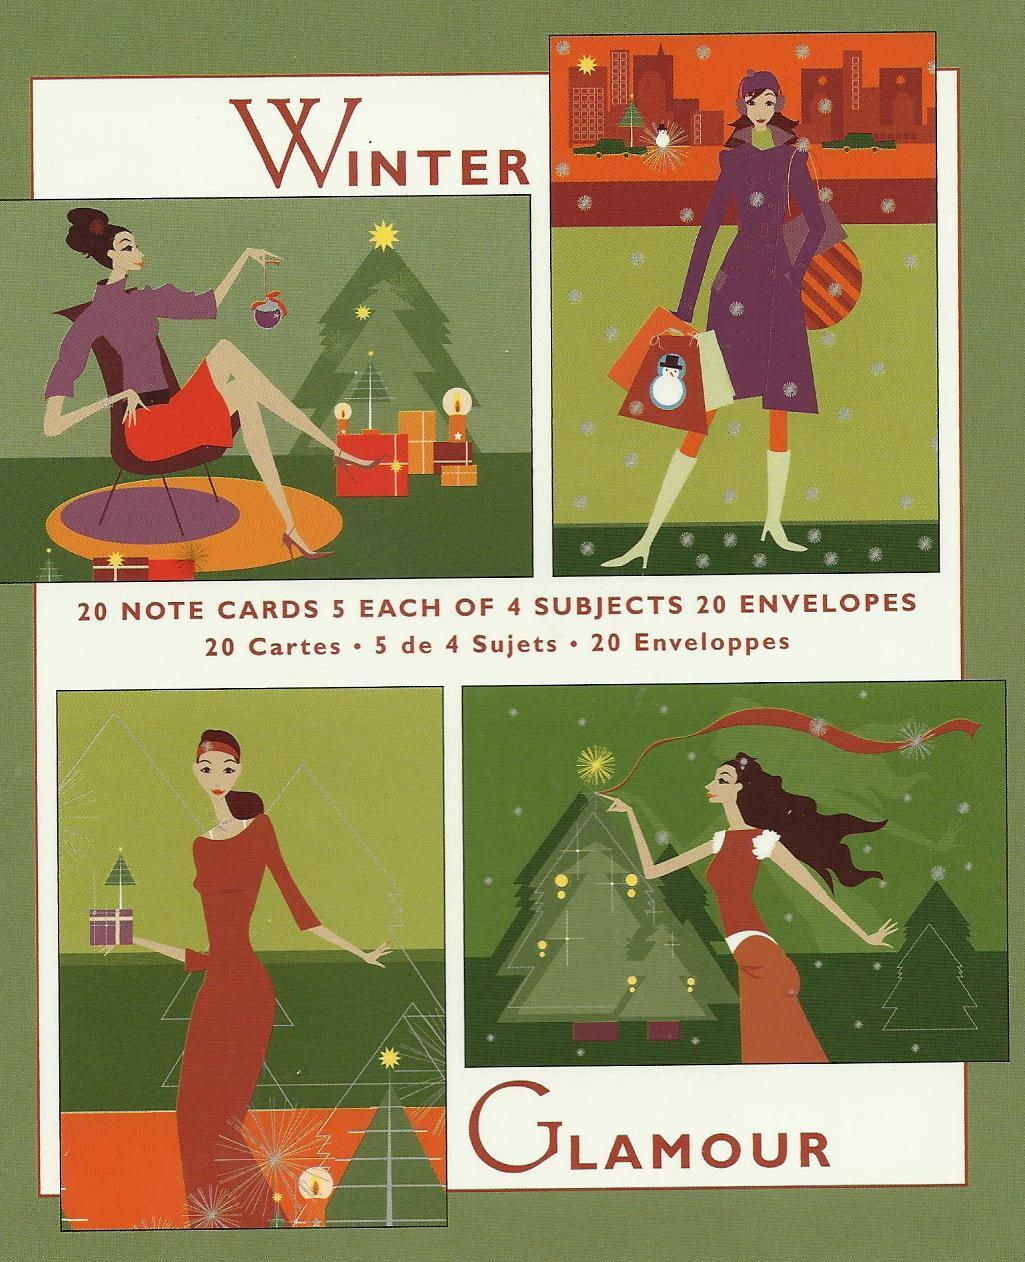 Marcel schurman winter glamour card